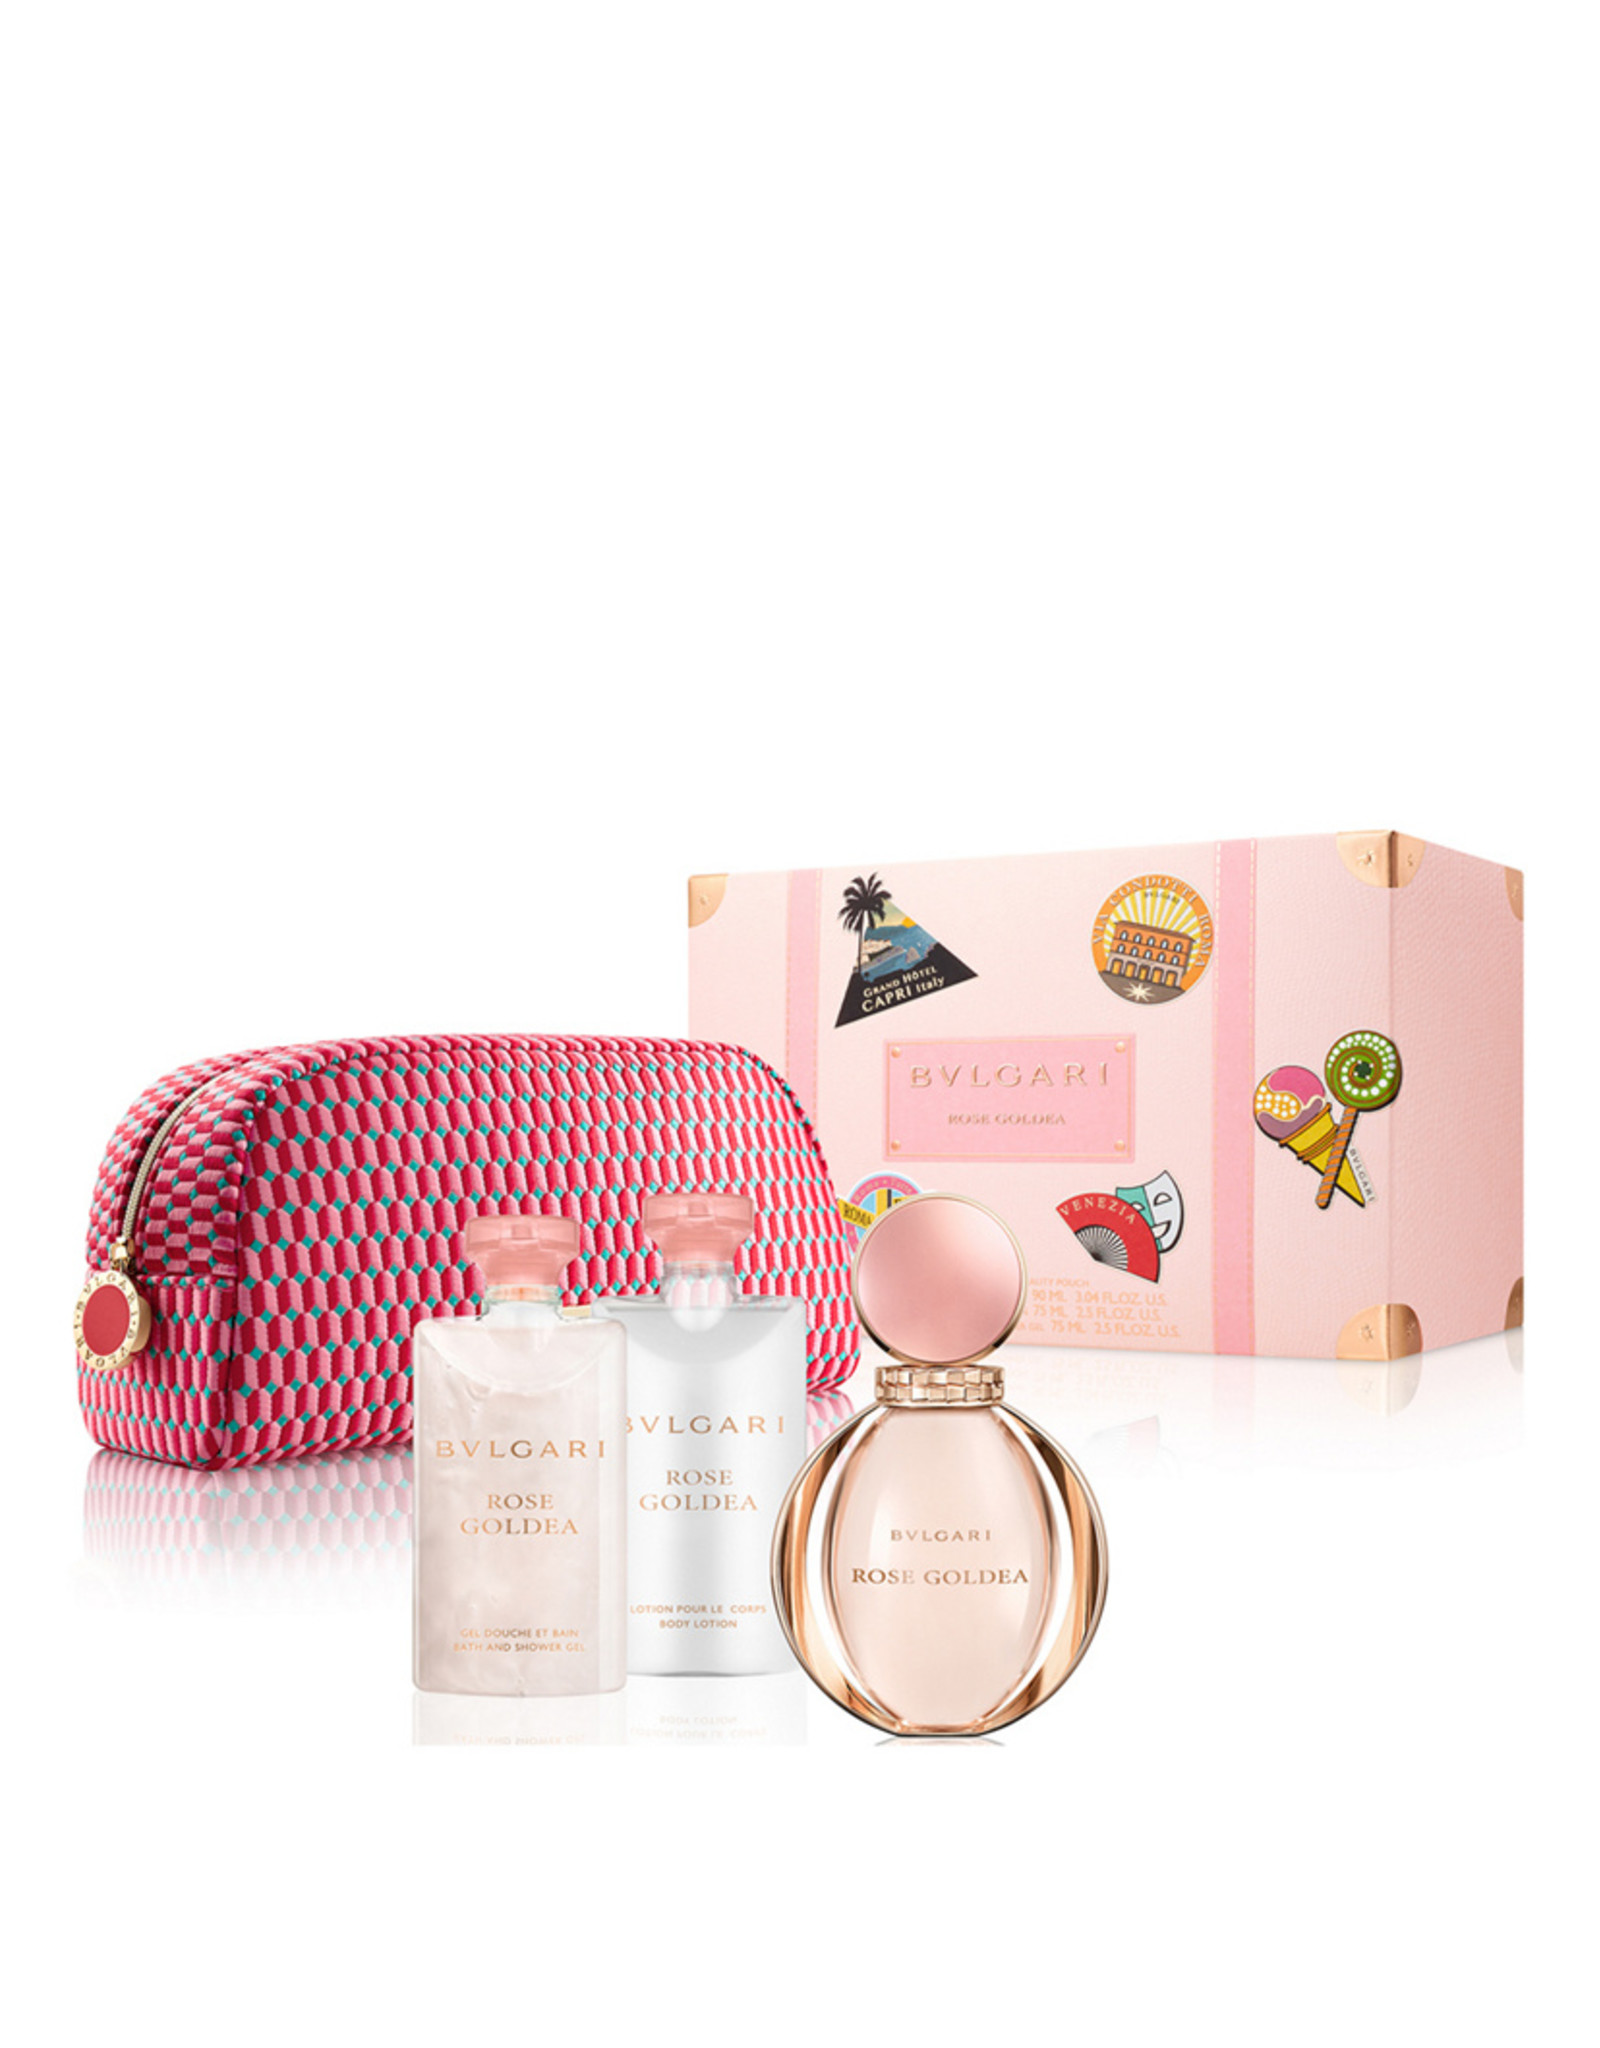 BVLGARI BVLGARI ROSE GOLDEA 4pc Set